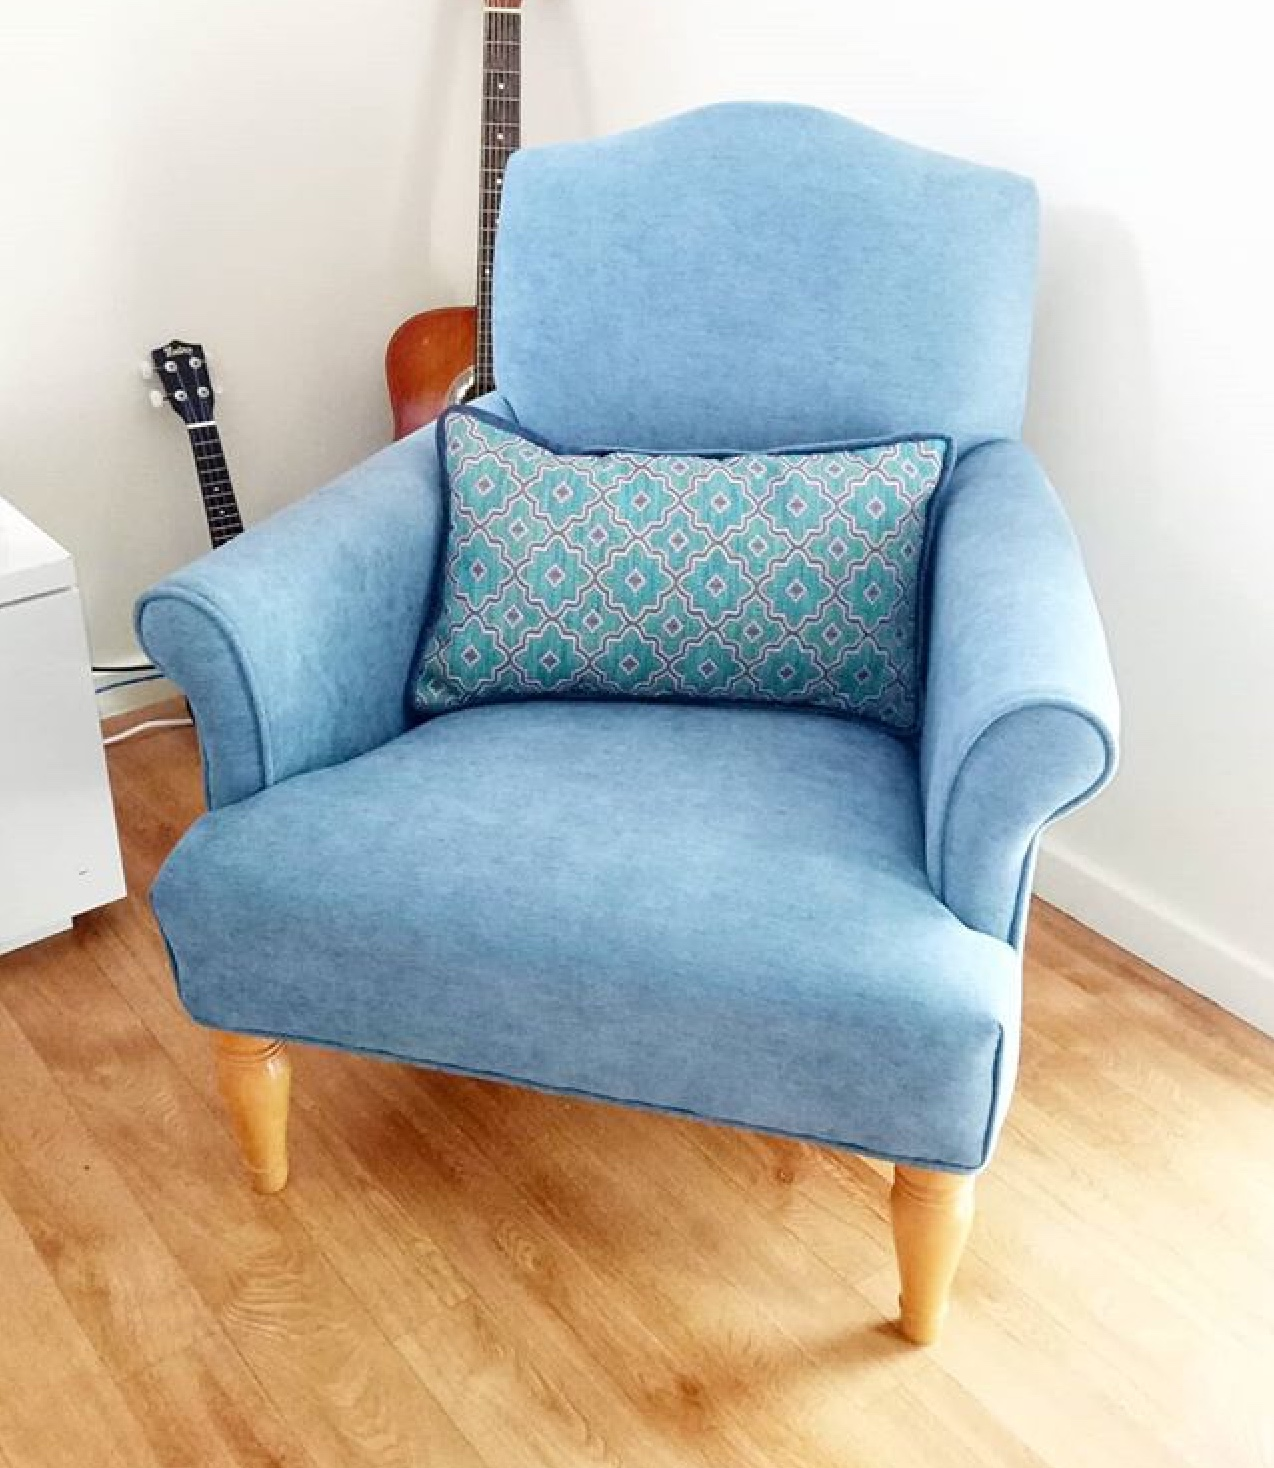 Services | upholstery Perth | Outdoor cushions Perth